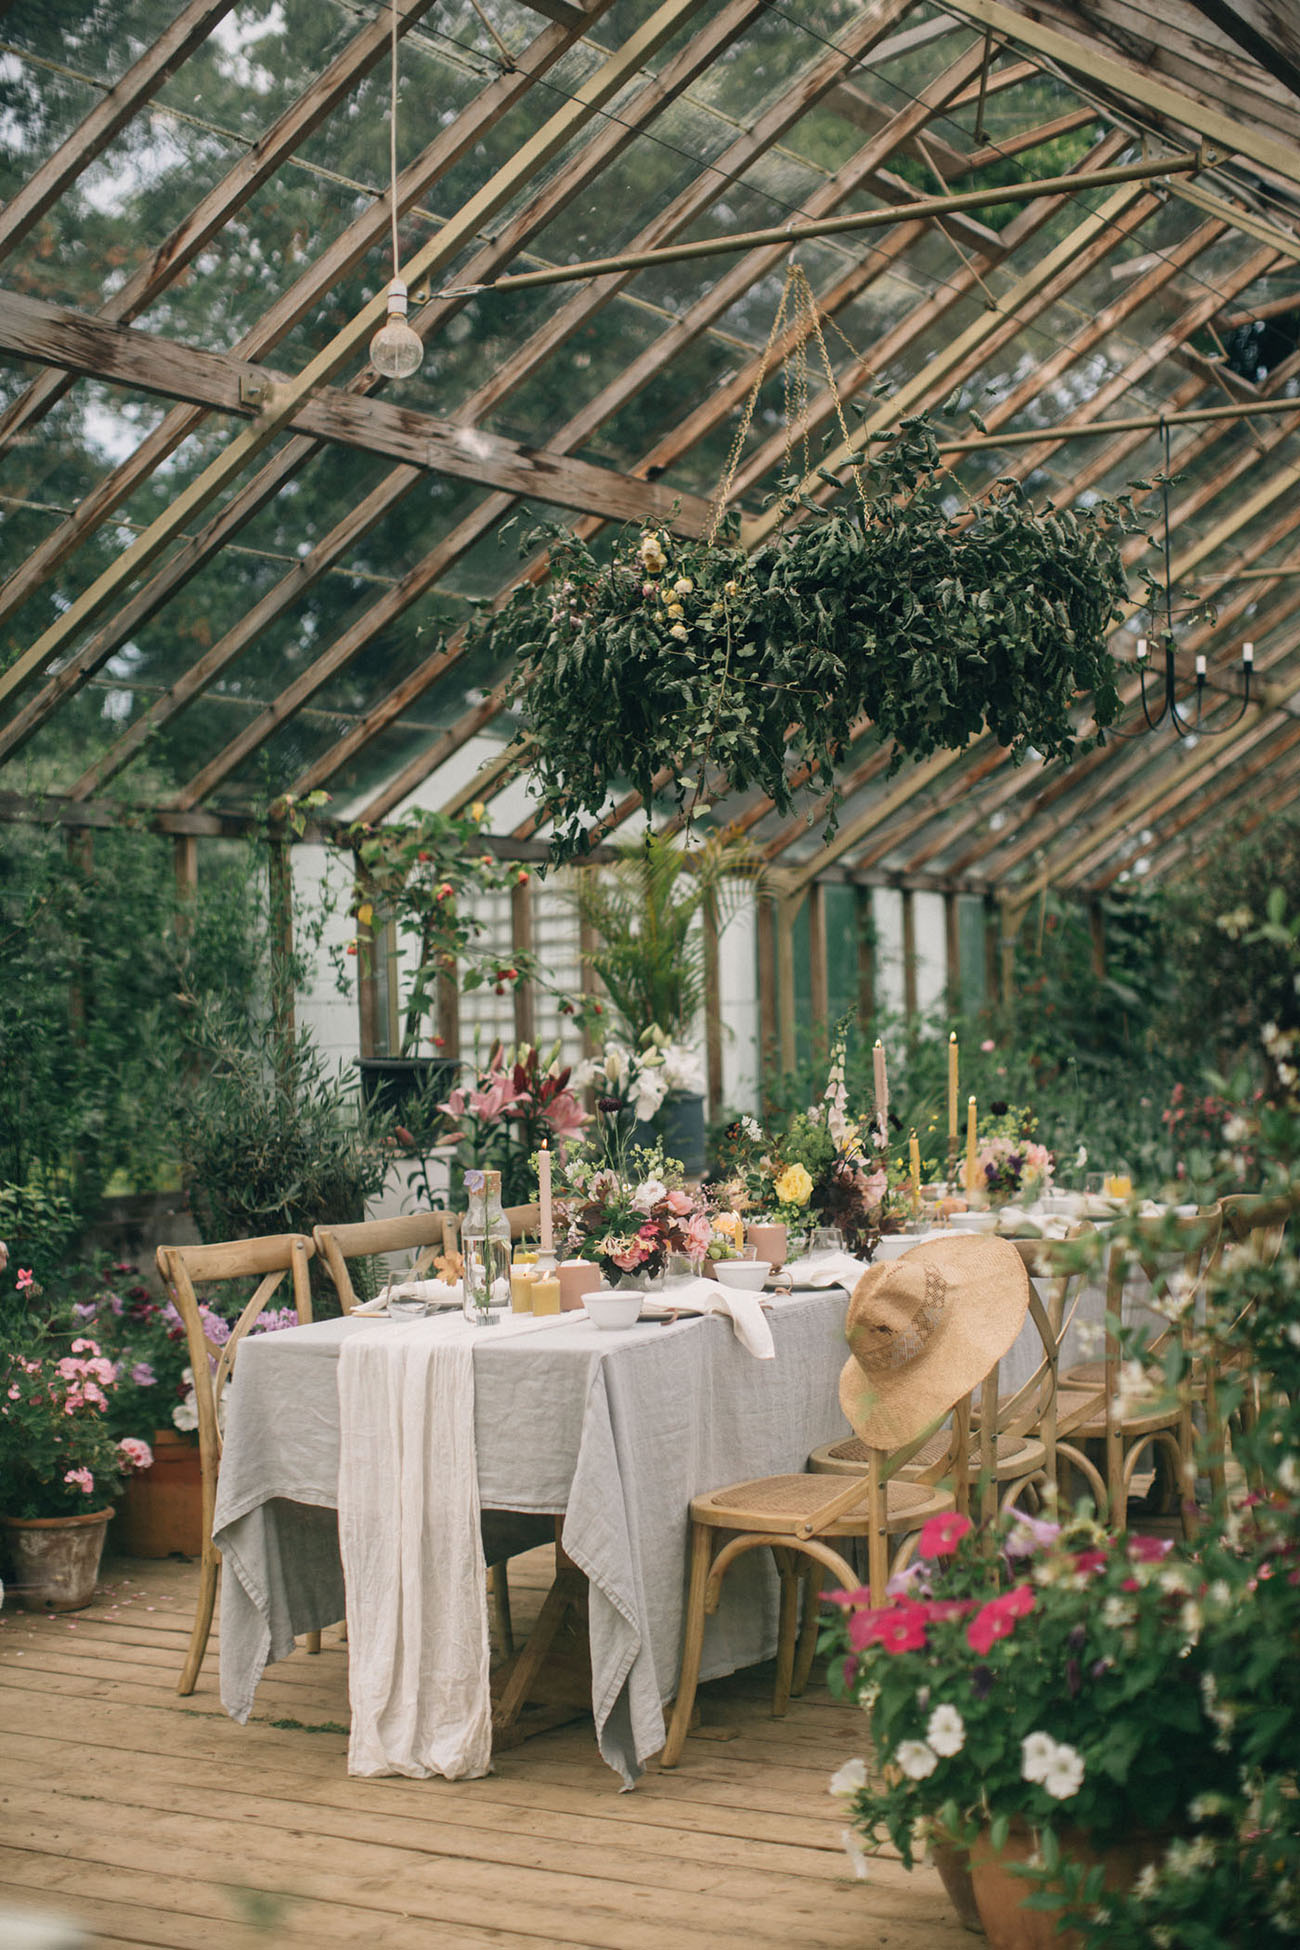 Dinner in a Greenhouse